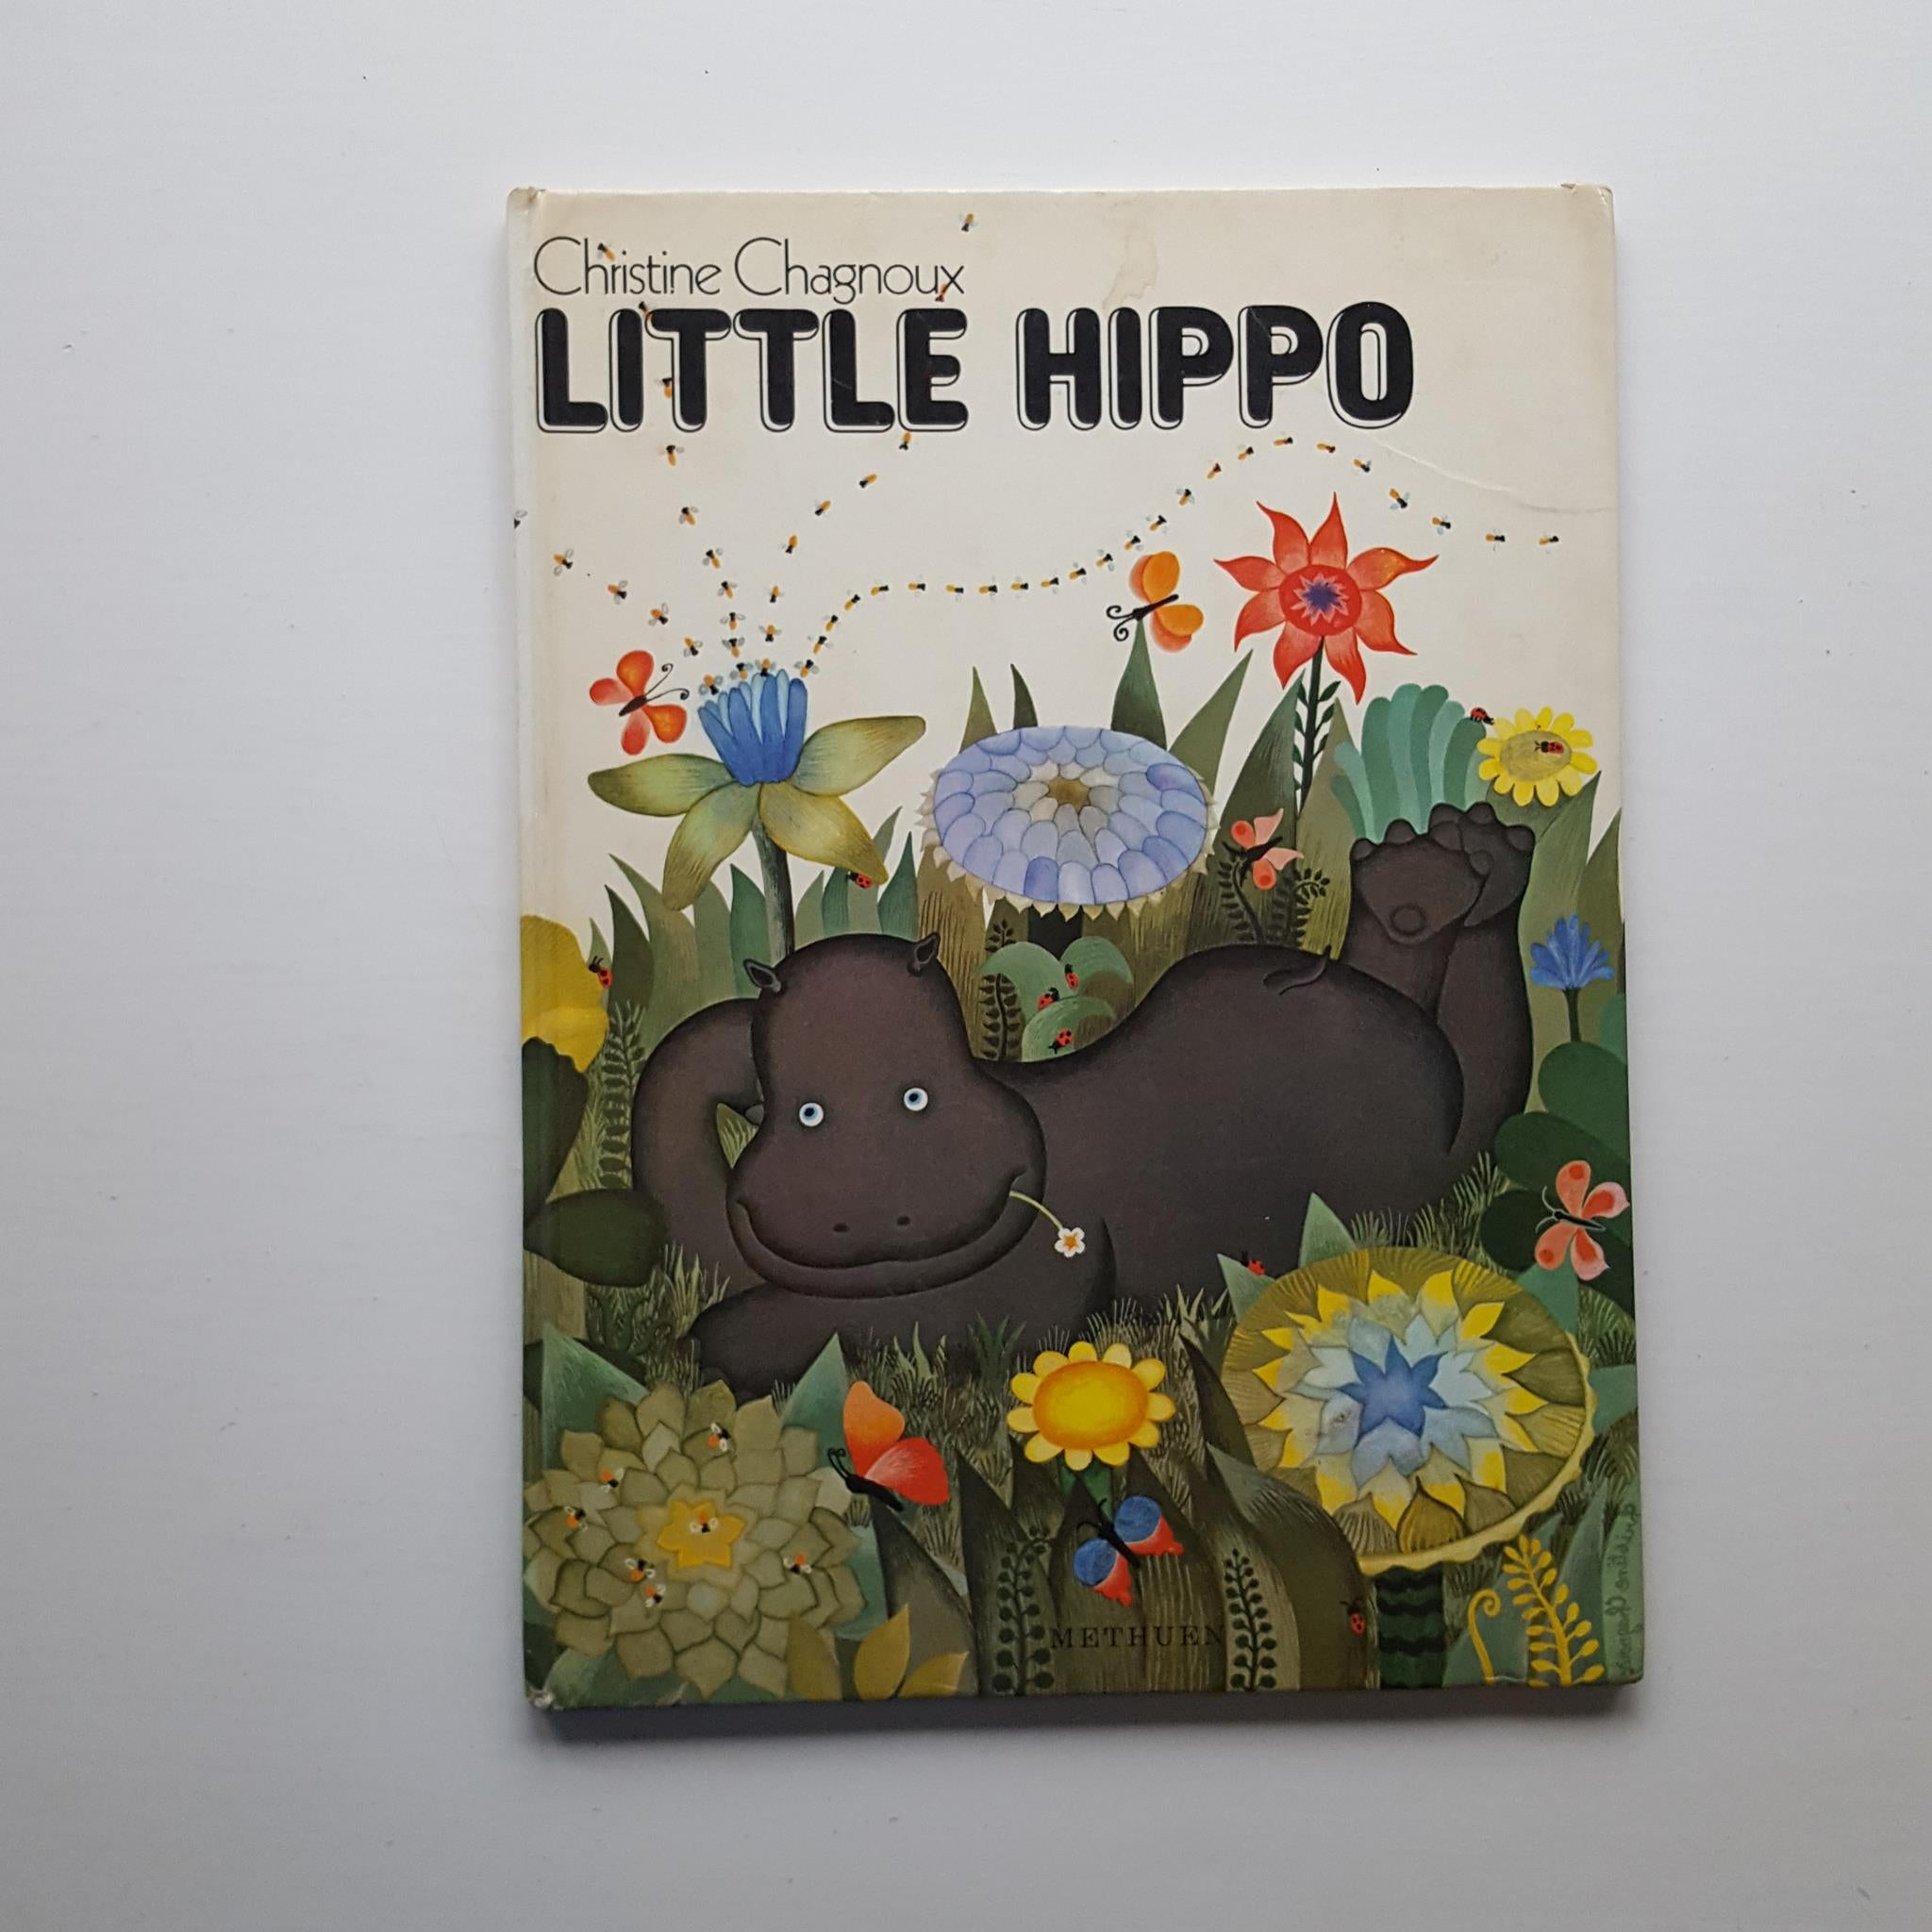 Little Hippo by Christine Chagnoux